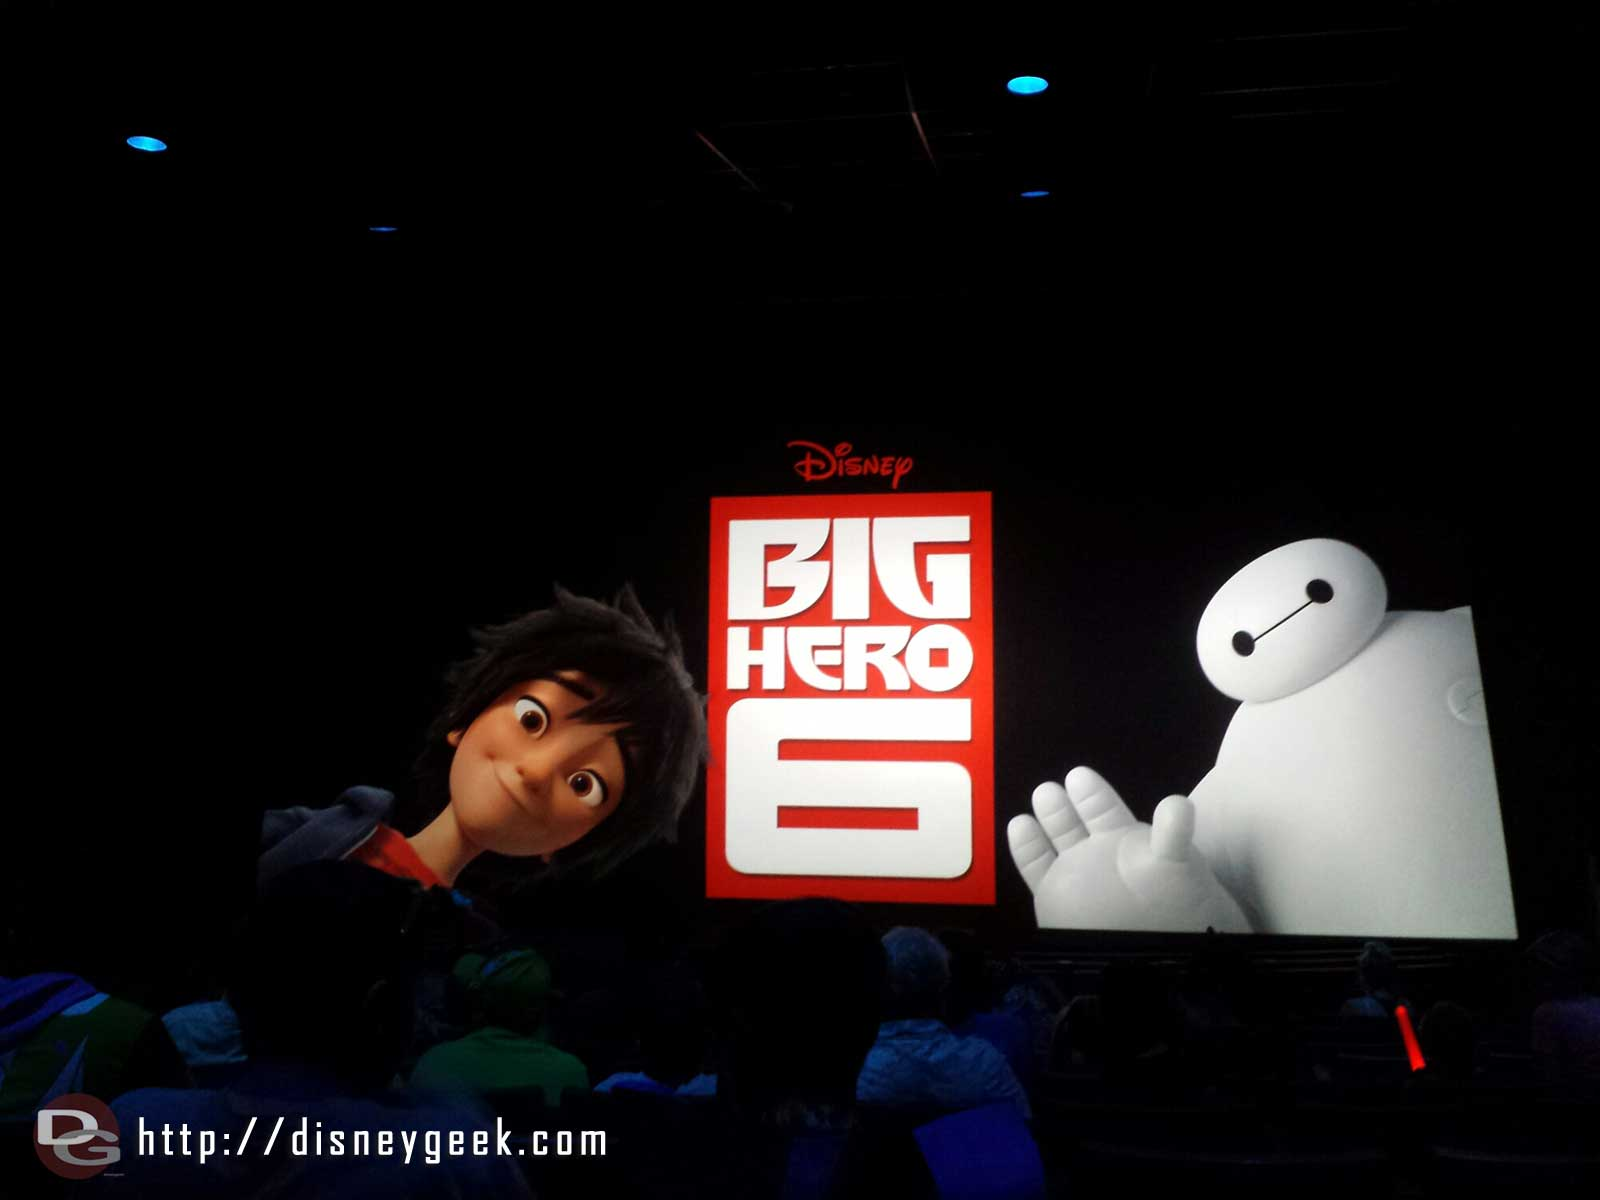 Stopped by the #BigHero6 sneak peek #Disneyland